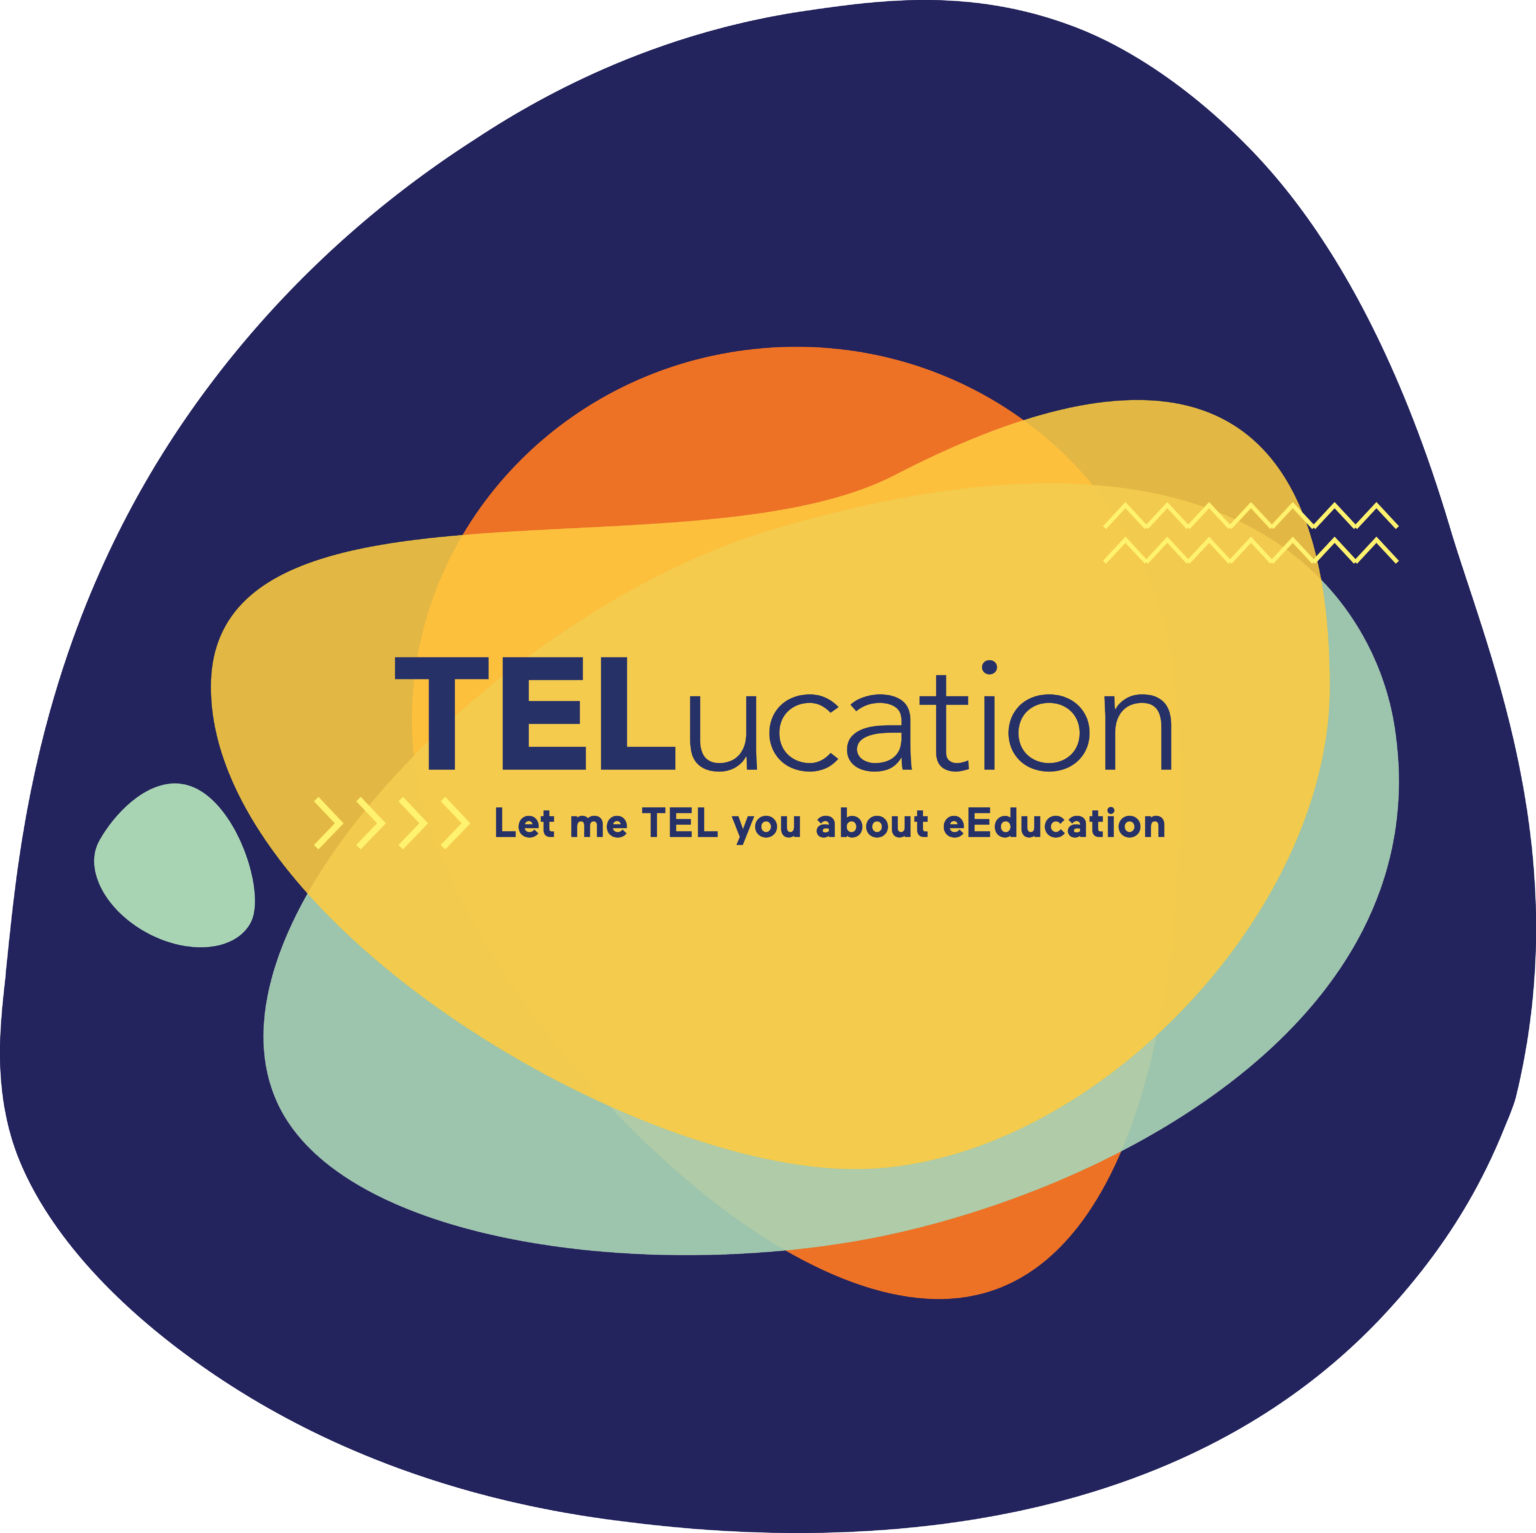 TELucation